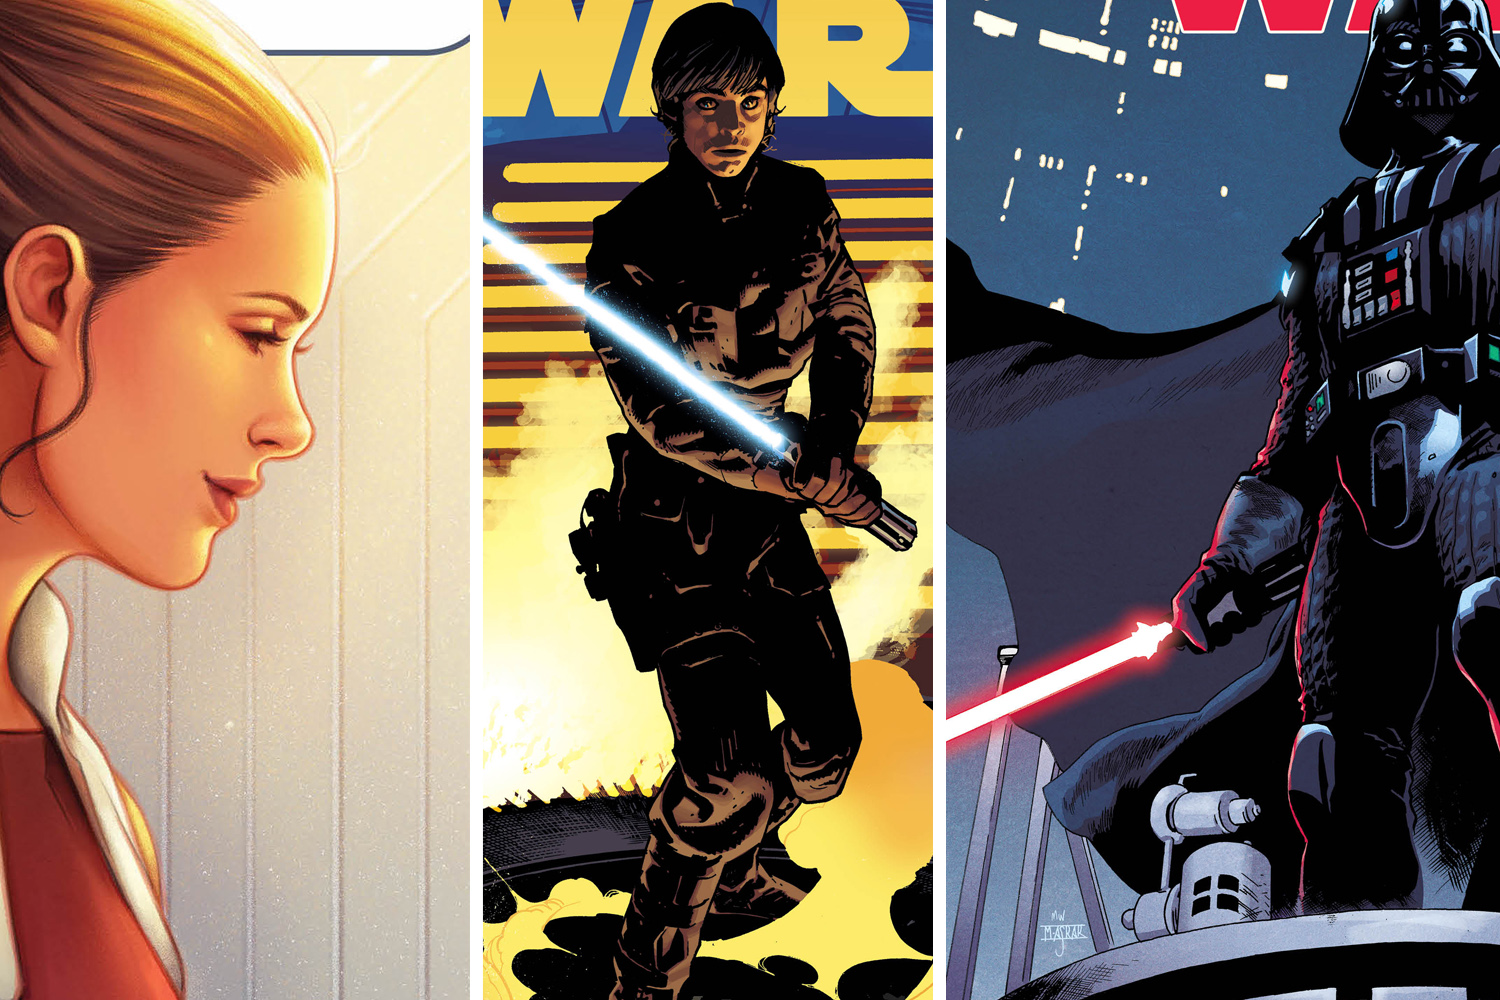 Get a first look at upcoming Star Wars variant covers.